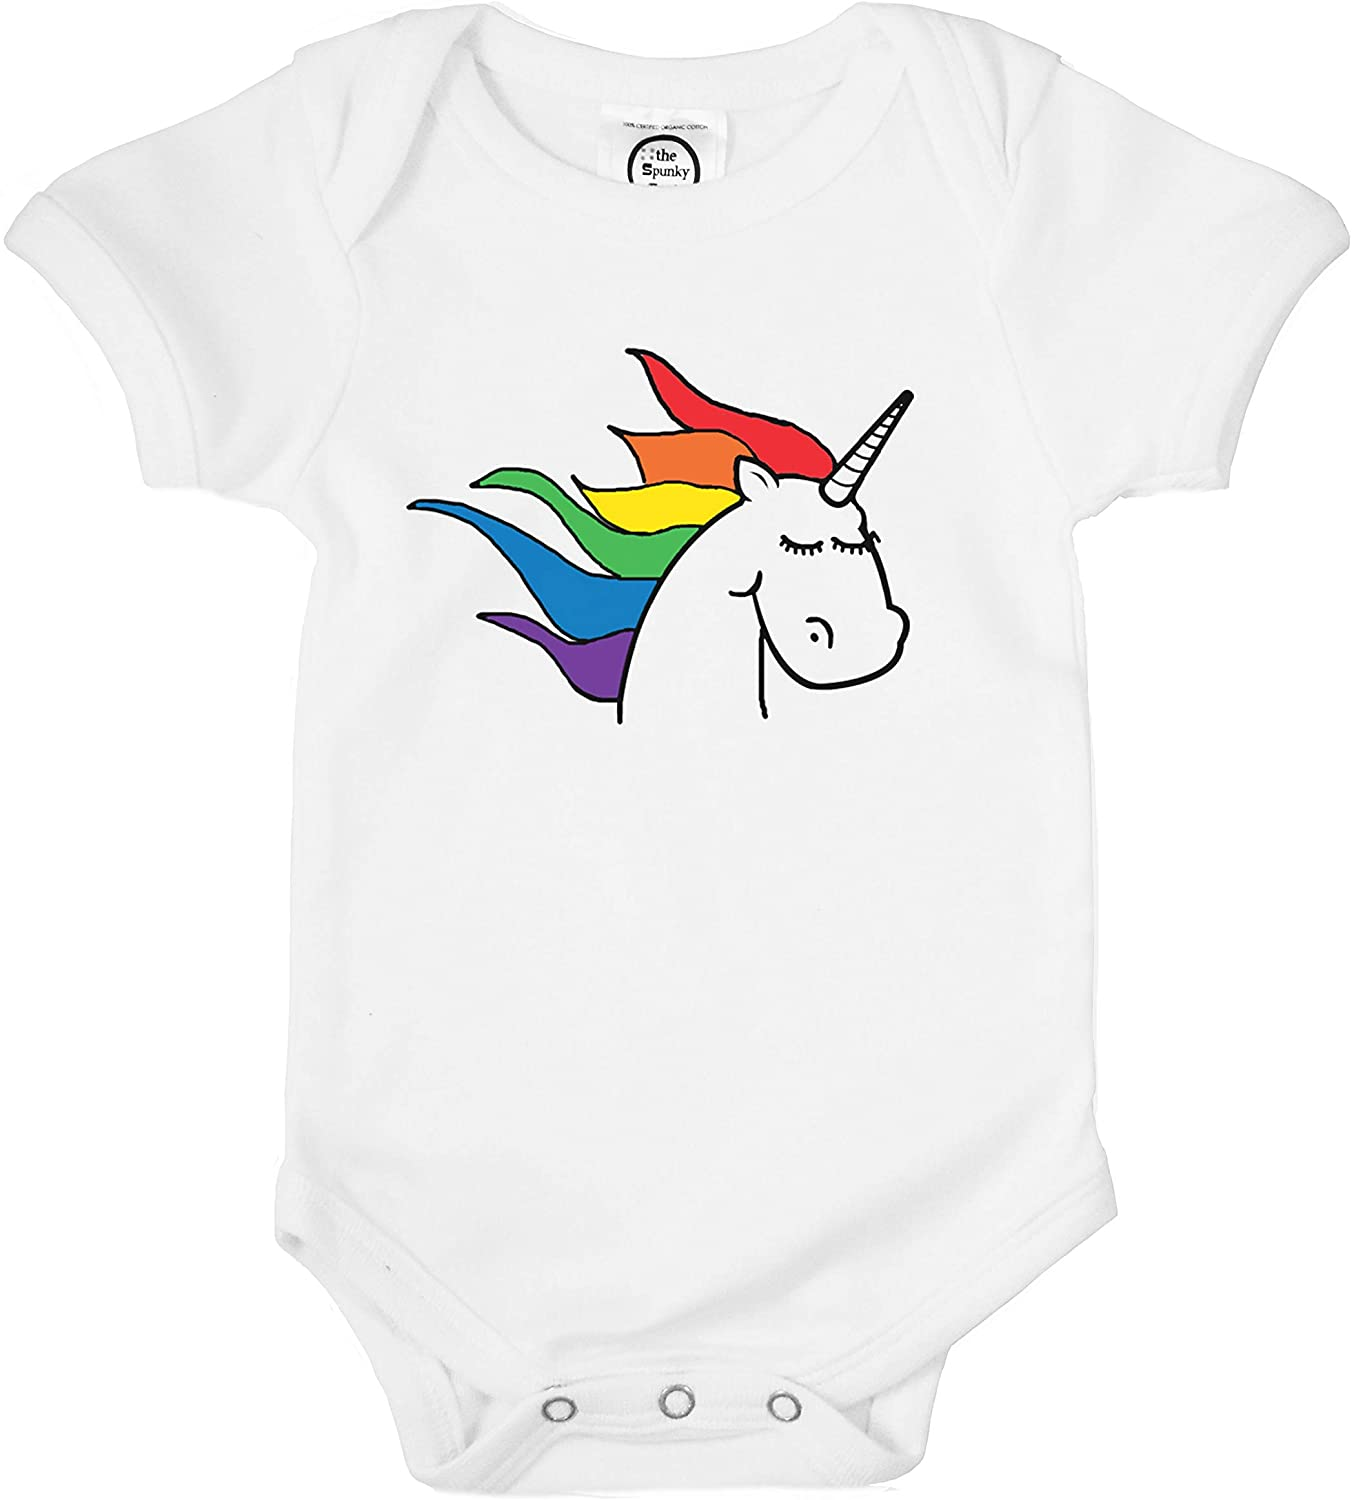 The Spunky Stork Baby Girl or Boy Rainbow Unicorn Organic Pride Outfit Bodysuit